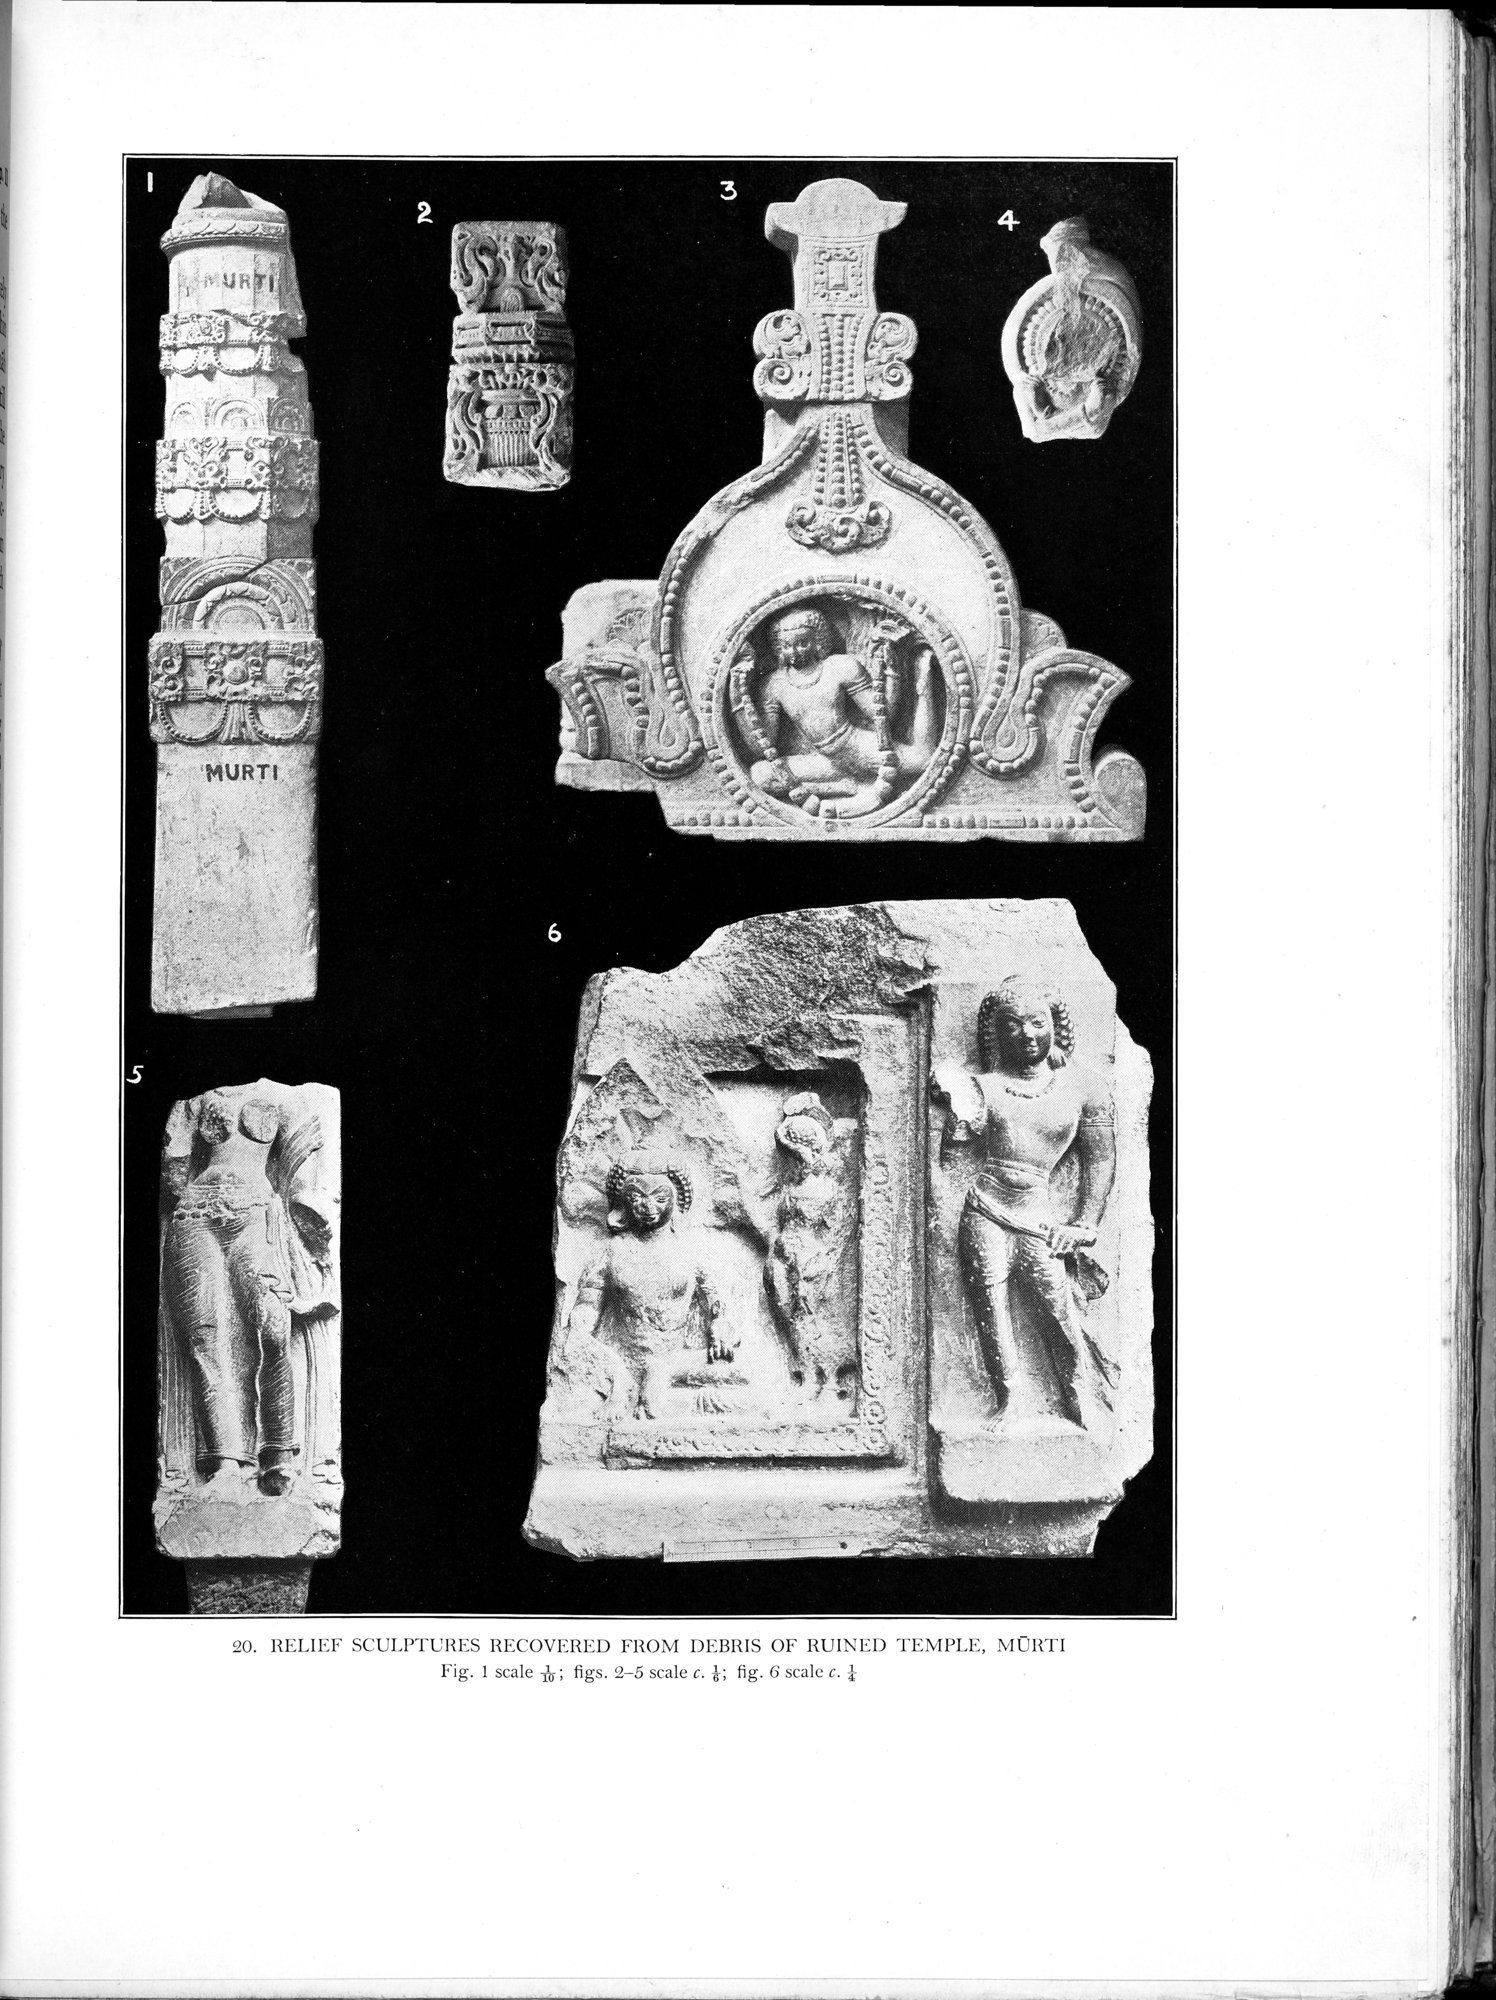 Archaeological Reconnaissances in North-Western India and South-Eastern Īrān : vol.1 / Page 95 (Grayscale High Resolution Image)